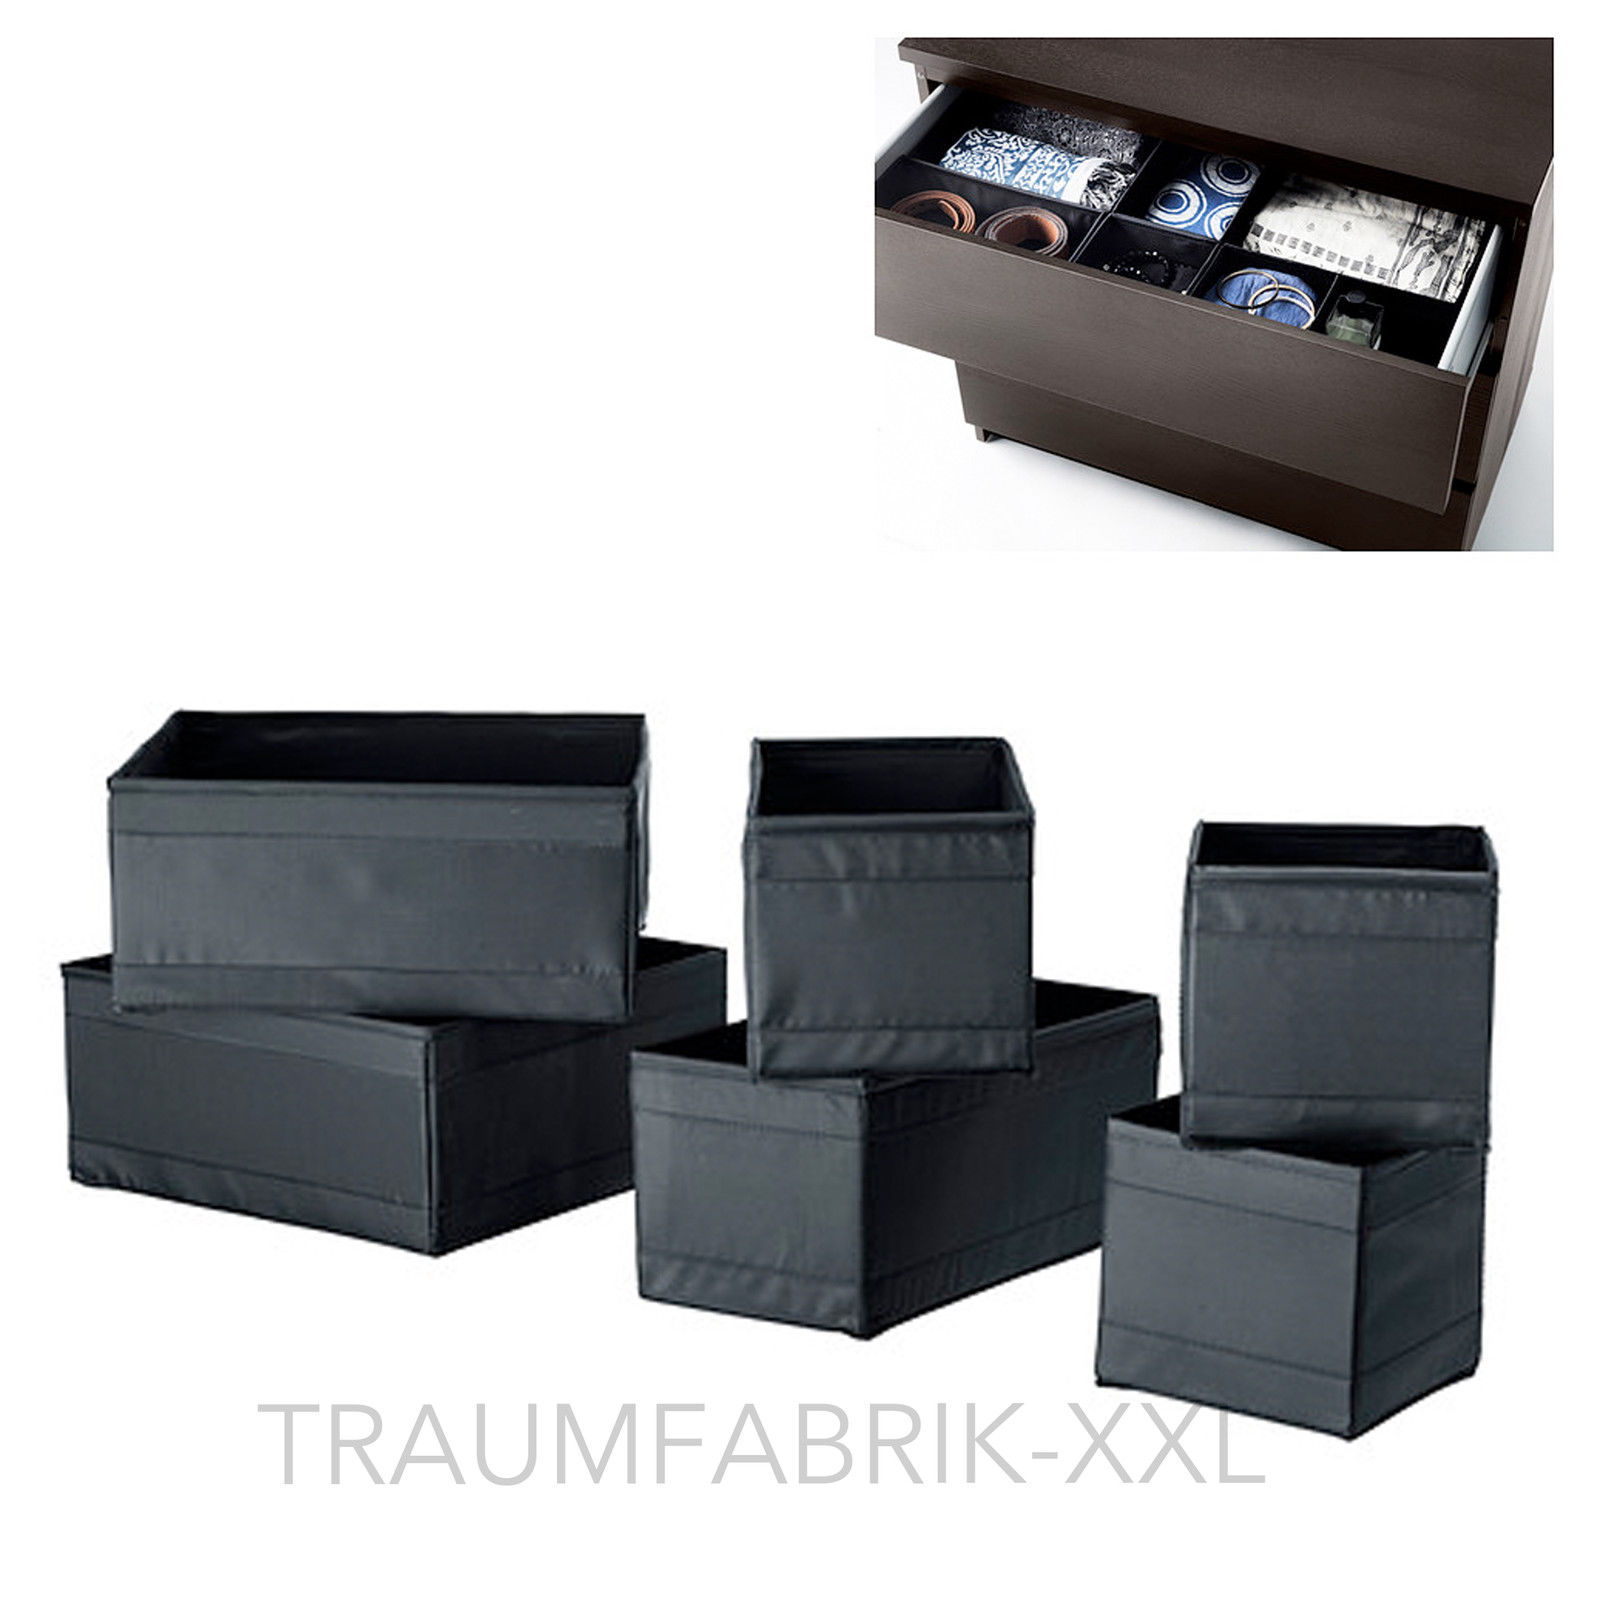 ikea skubb kleidungsbox 6er set schwarz aufbewahrung schachtel boxen kisten box traumfabrik xxl. Black Bedroom Furniture Sets. Home Design Ideas